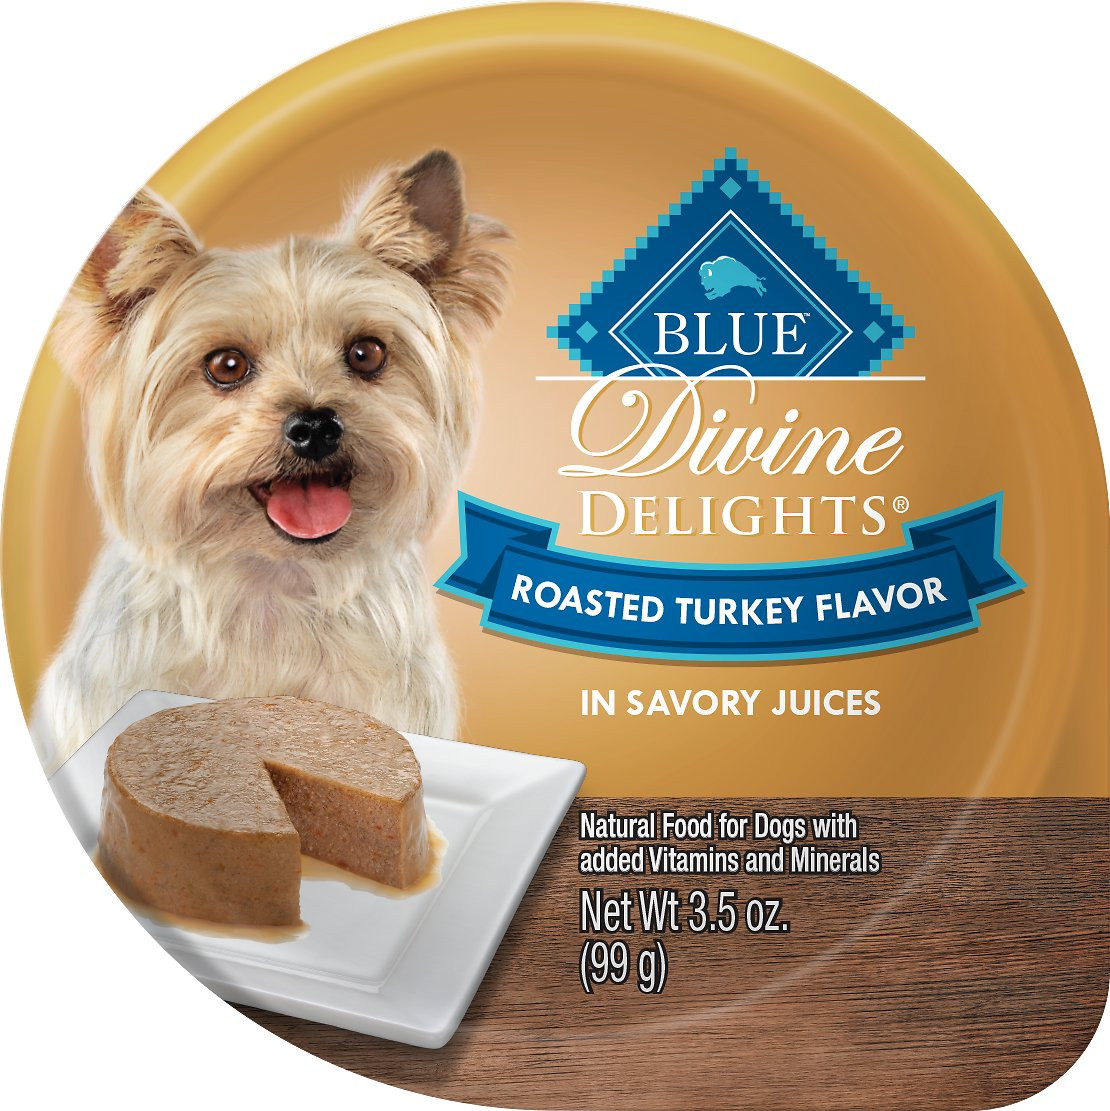 Blue Buffalo Divine Delights Roasted Turkey Flavor Pate Dog Food Trays Image